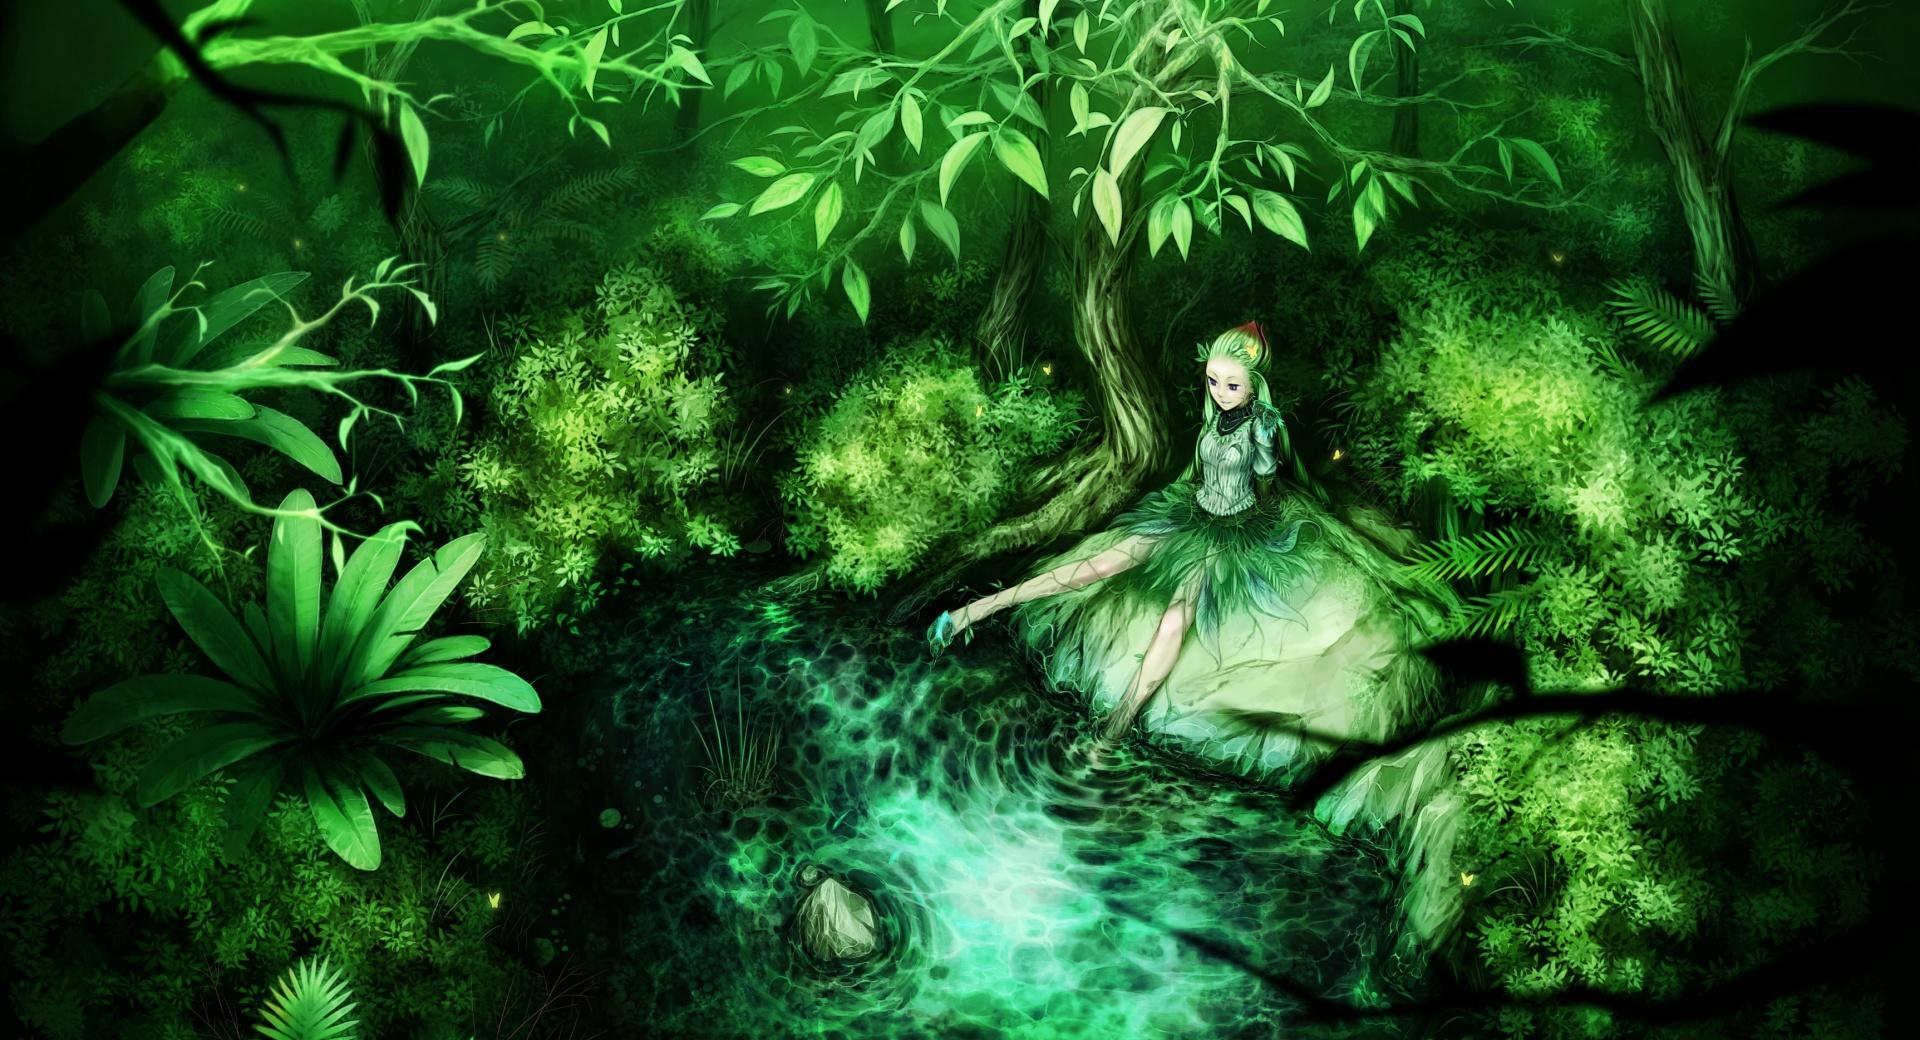 Green Fairy at 1600 x 1200 size wallpapers HD quality